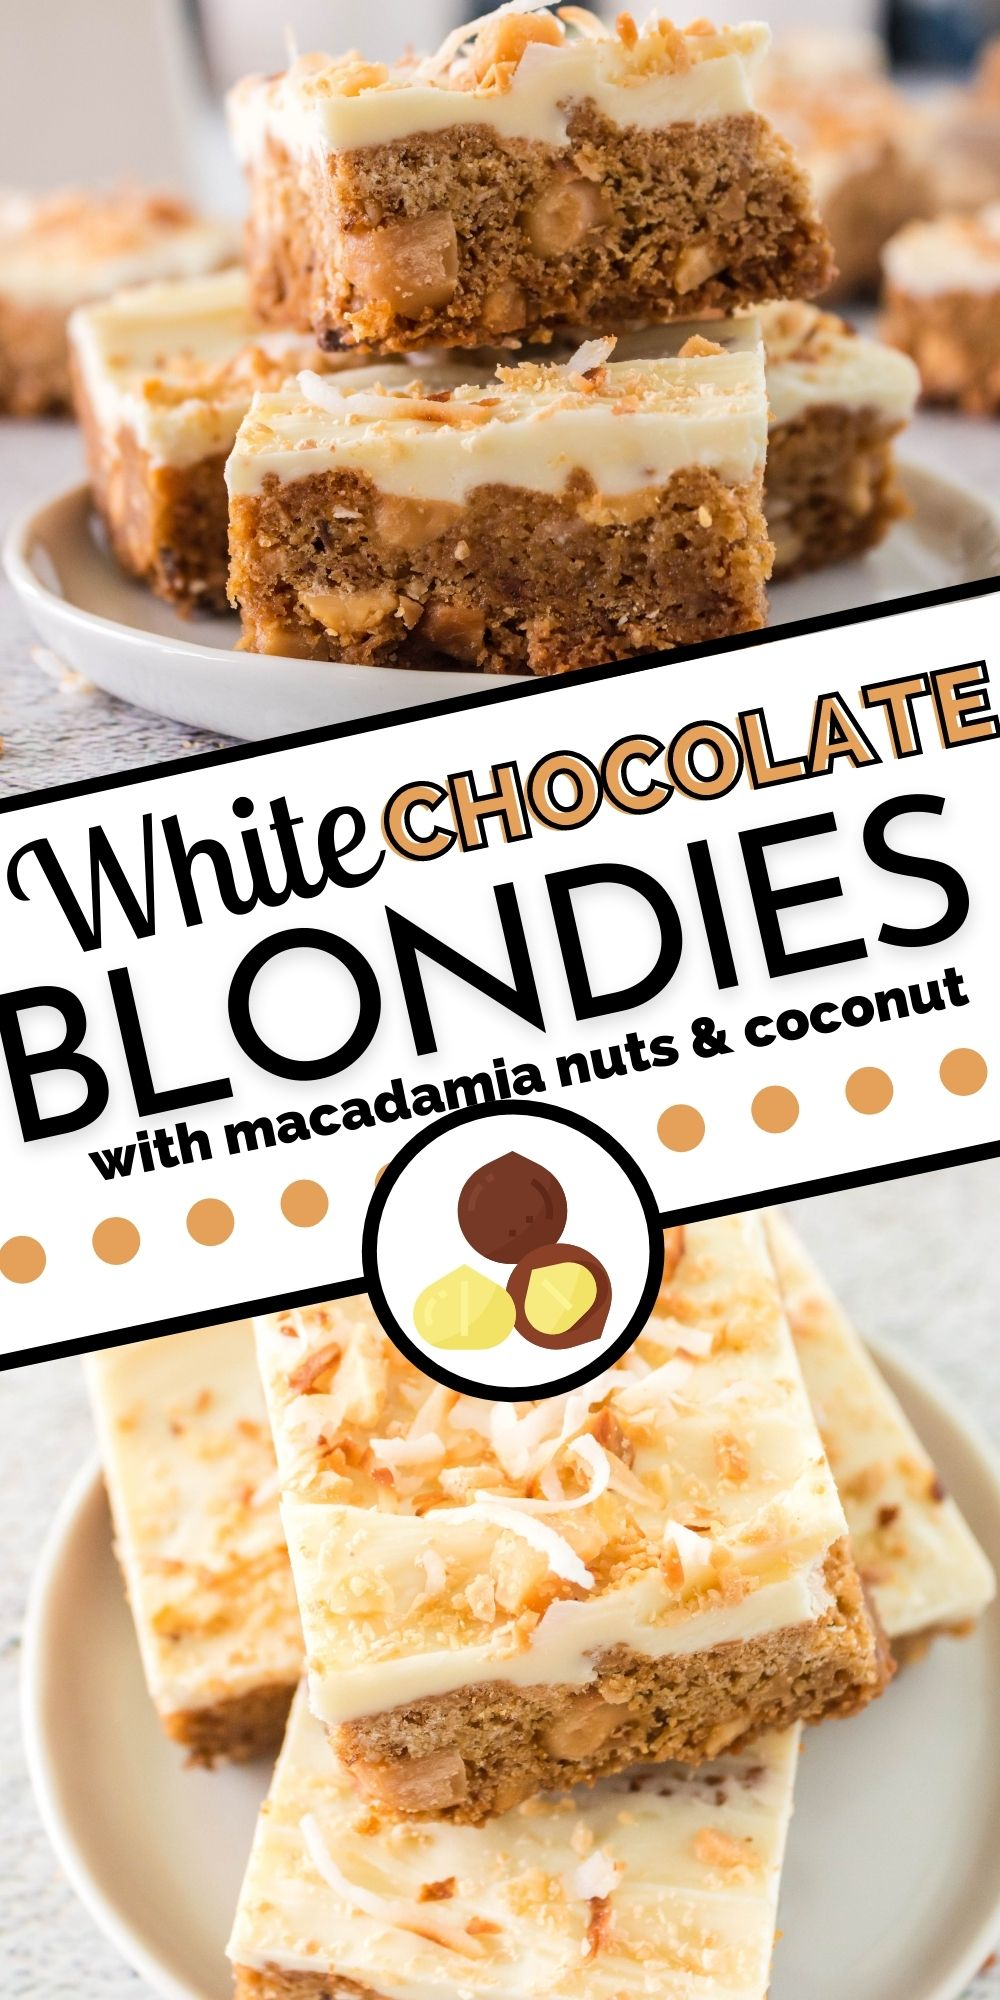 These White Chocolate Blondies with Macadamia Nuts and Coconutare perfect for potlucks and parties, get-togethers, and bake sales. They're bakery-quality, and people go nuts over them! via @foodfolksandfun